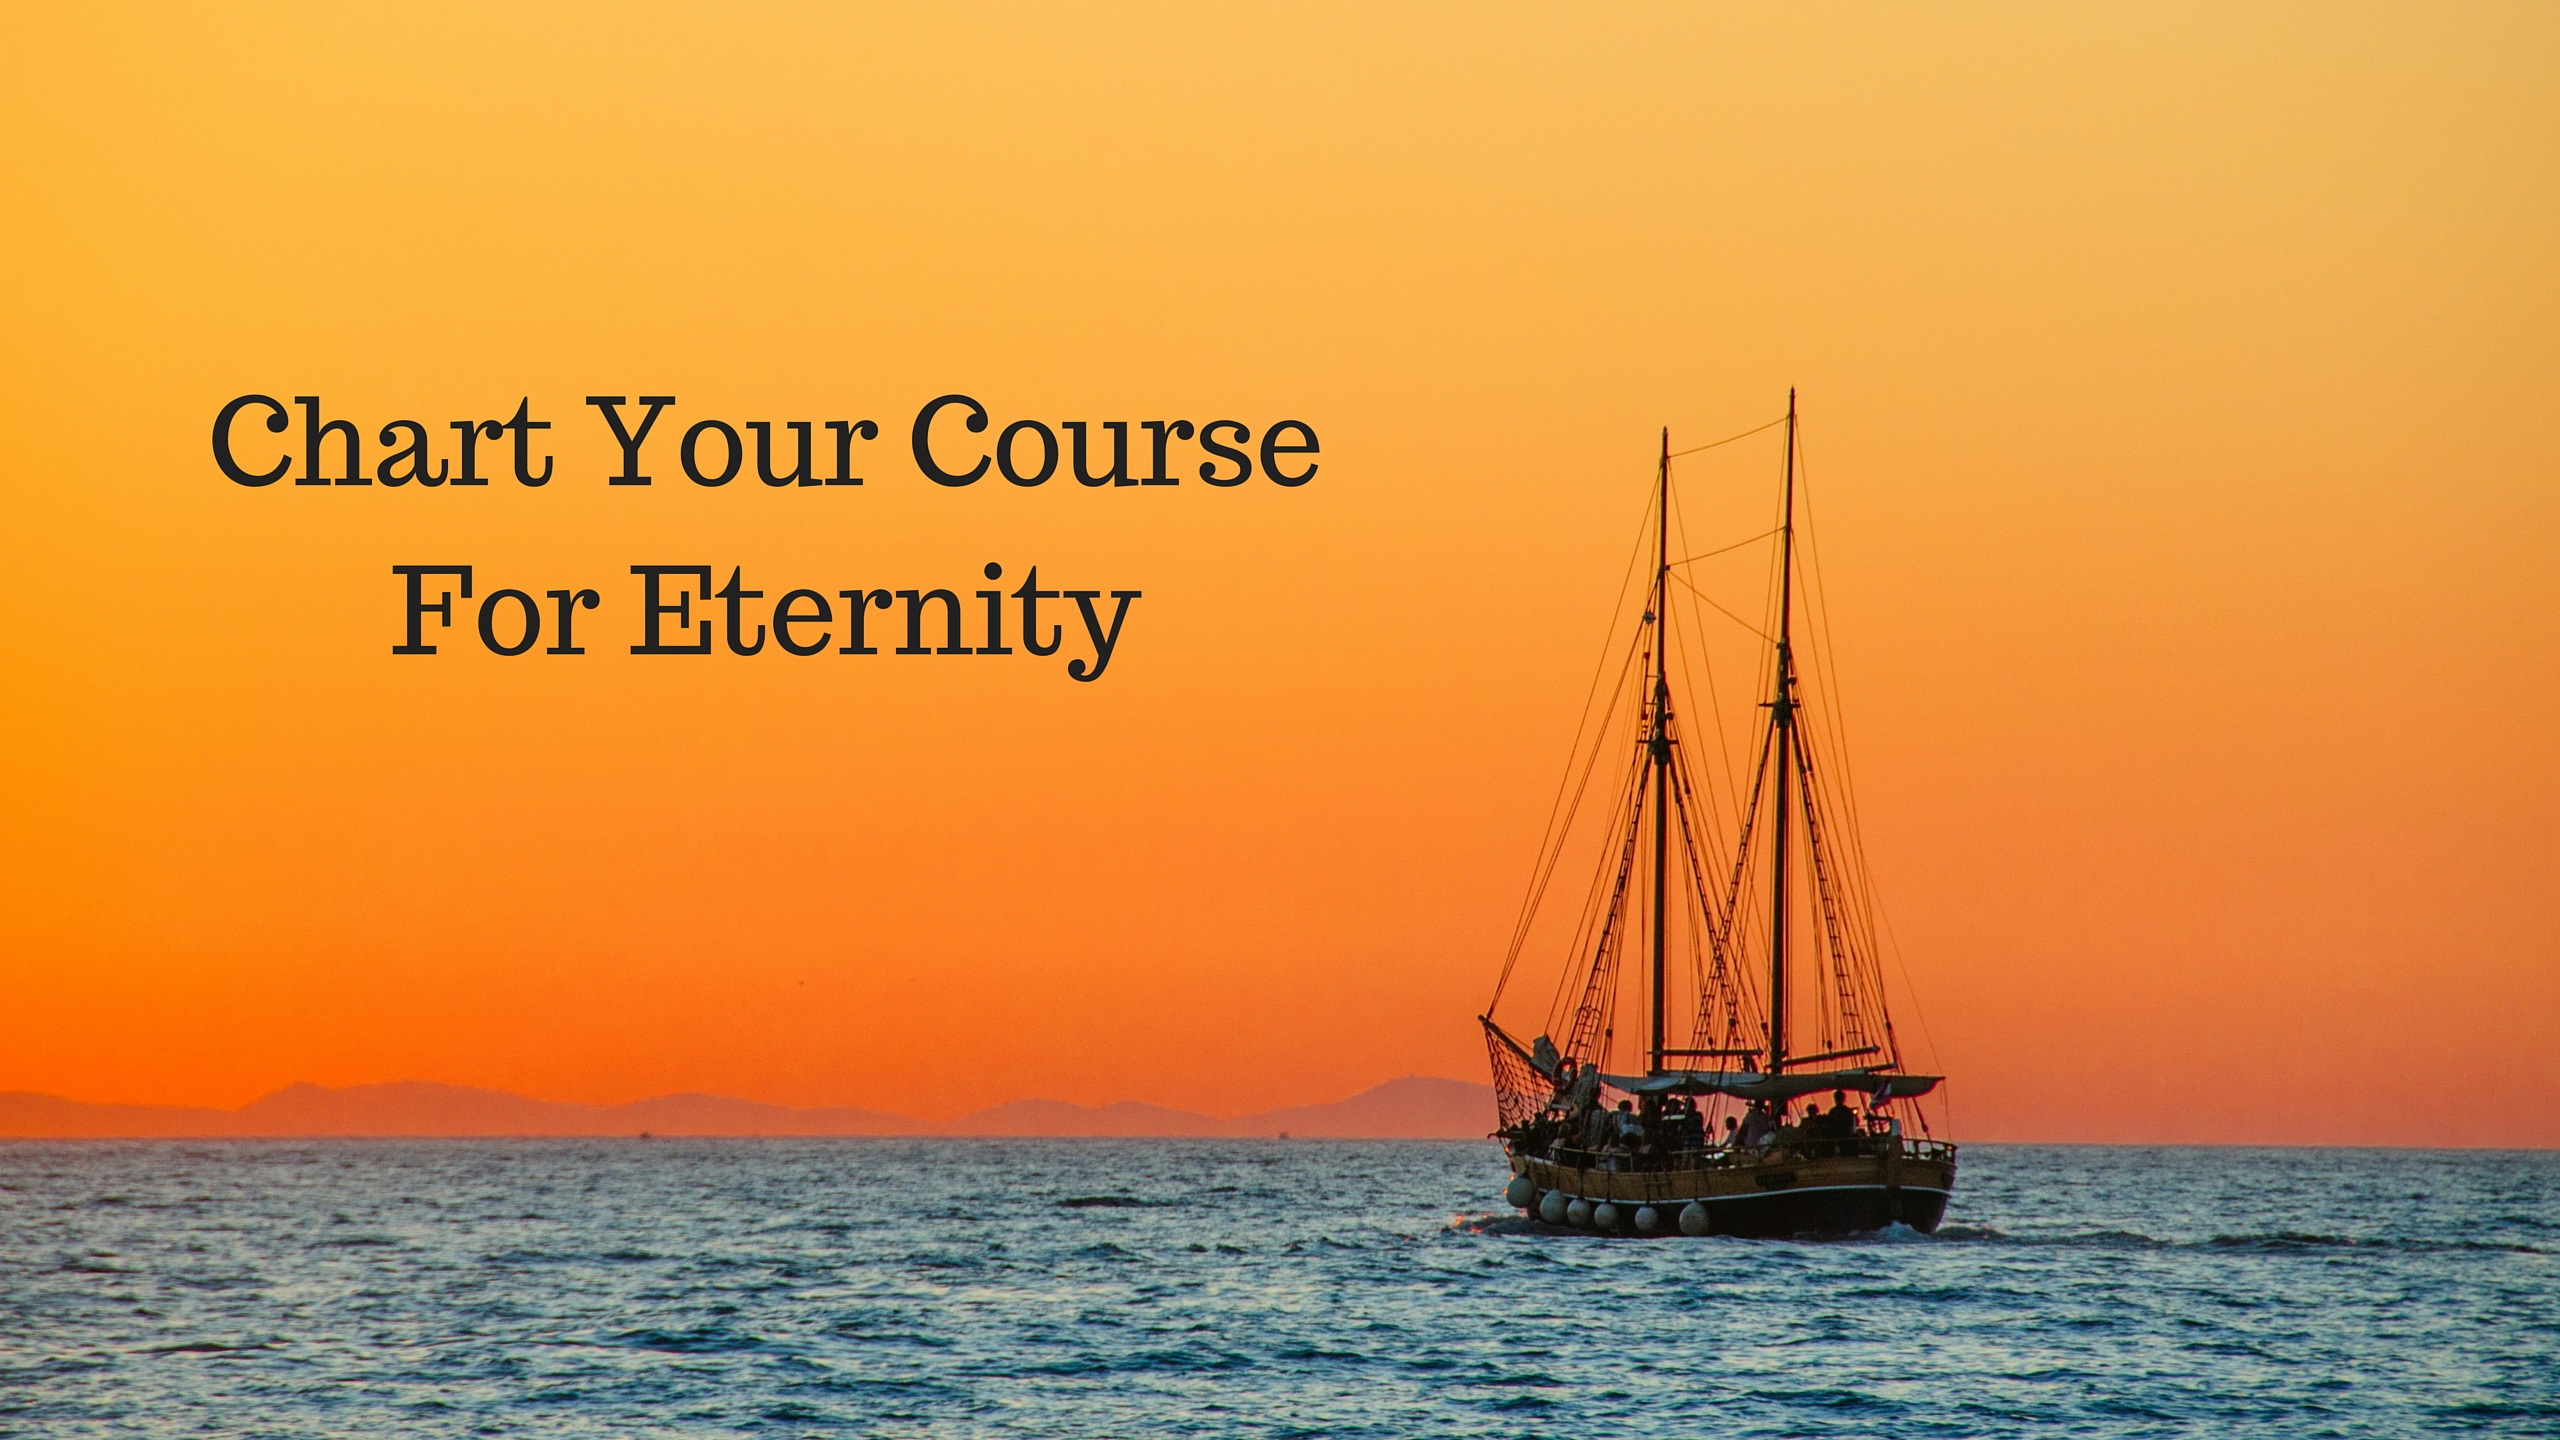 Chart Your Course For Eternity